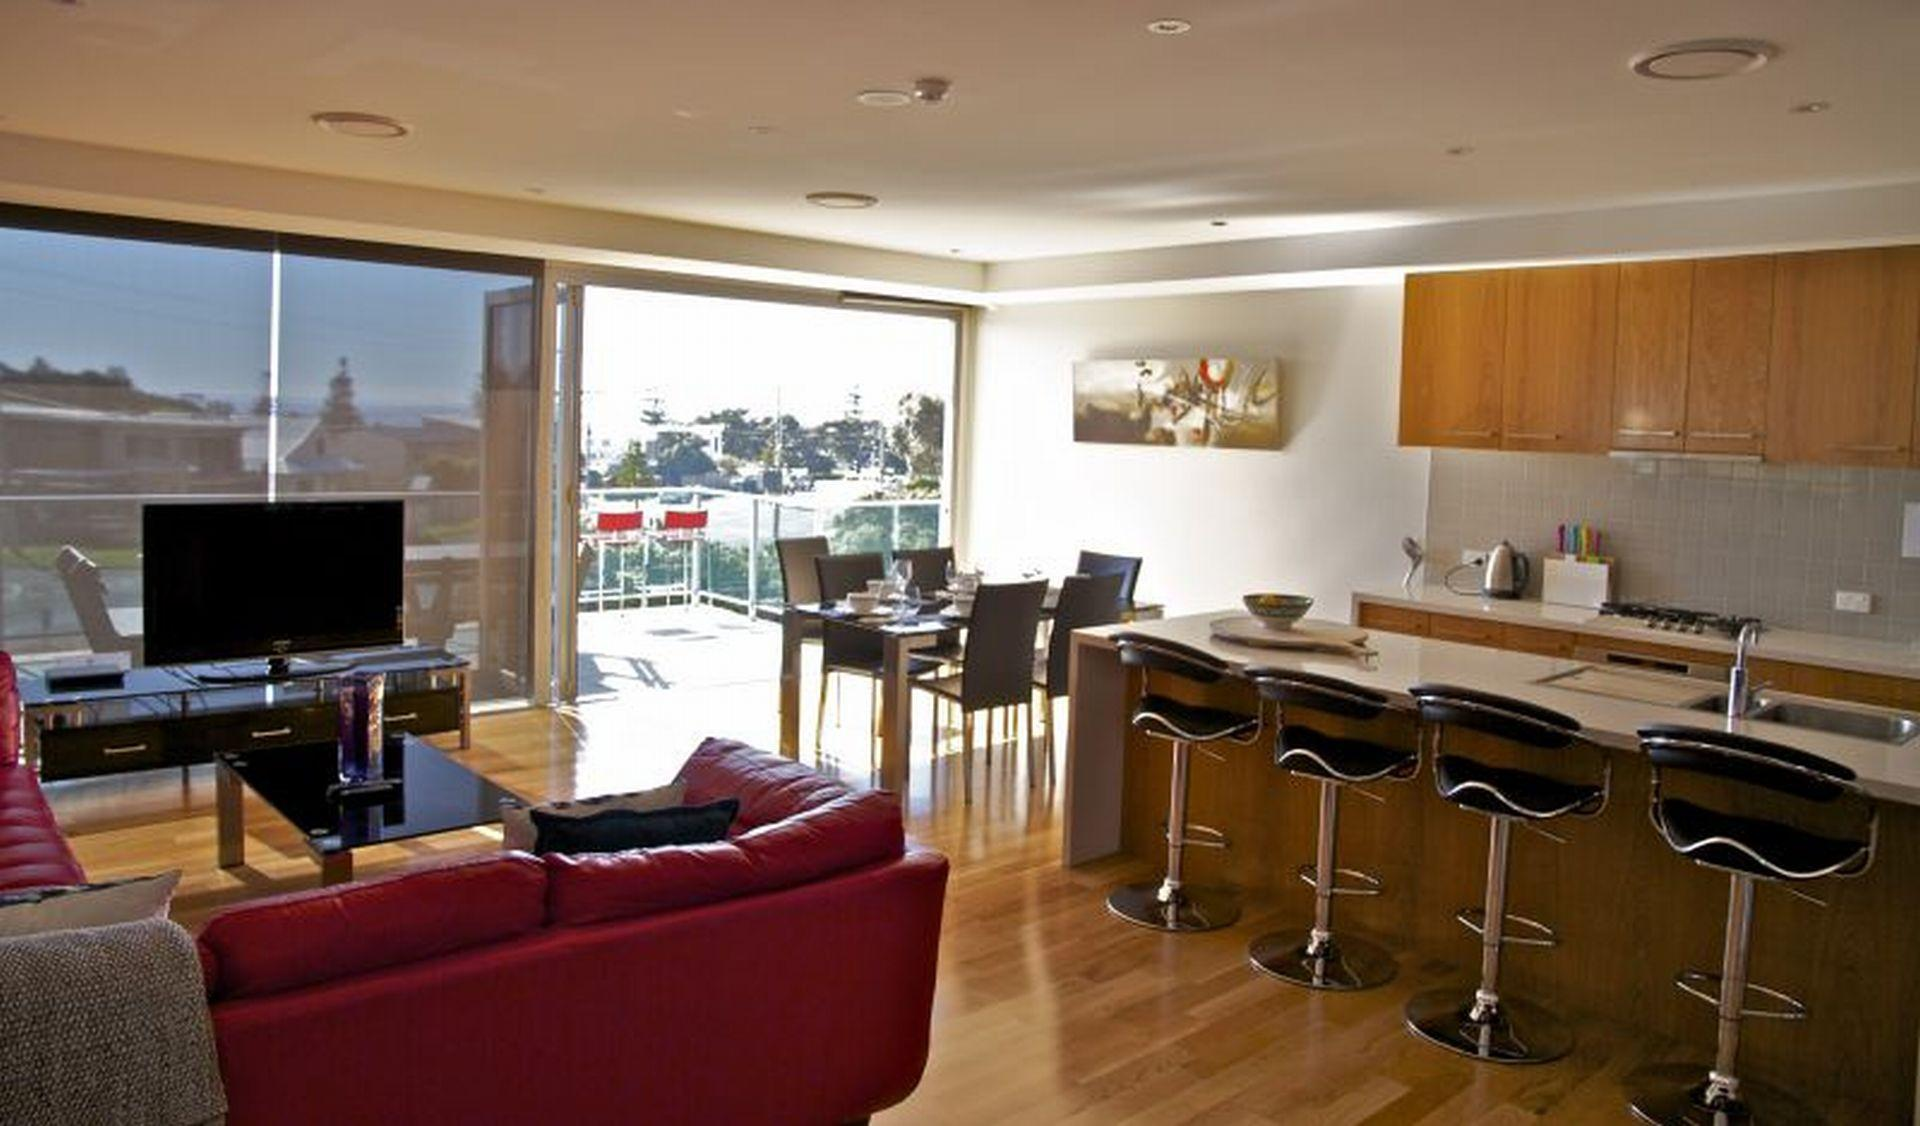 Penthouse, 3 soverom (3-Bedroom Penthouse)